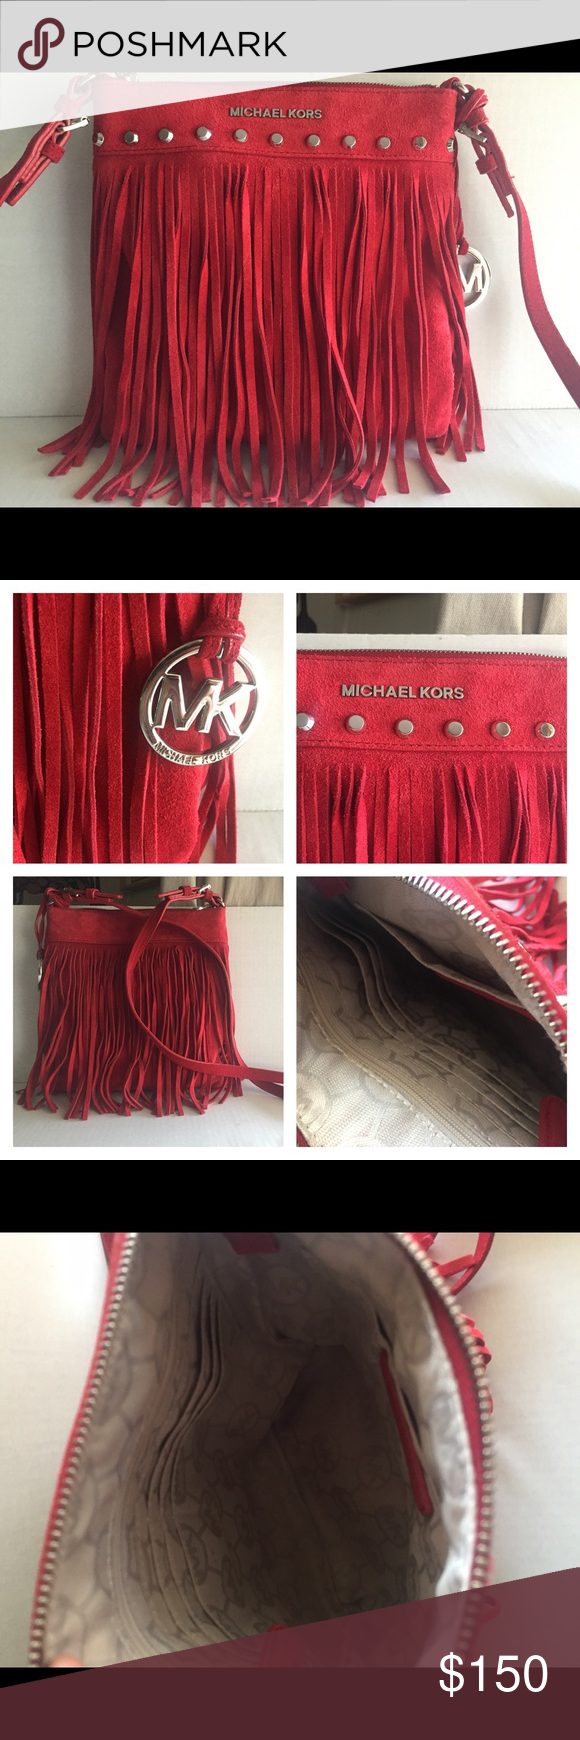 """Michael Kors Billy Red Suede Crossbody Michael Kors Billy Fringe Suede red. Fully lined six slots for credit cards, zipper closure pocket, slide pocket, silver hardware. Measures 9.5"""" long x 9"""" tall c 1""""wide. New without tags attached. Never used! Michael Kors Bags Crossbody Bags"""